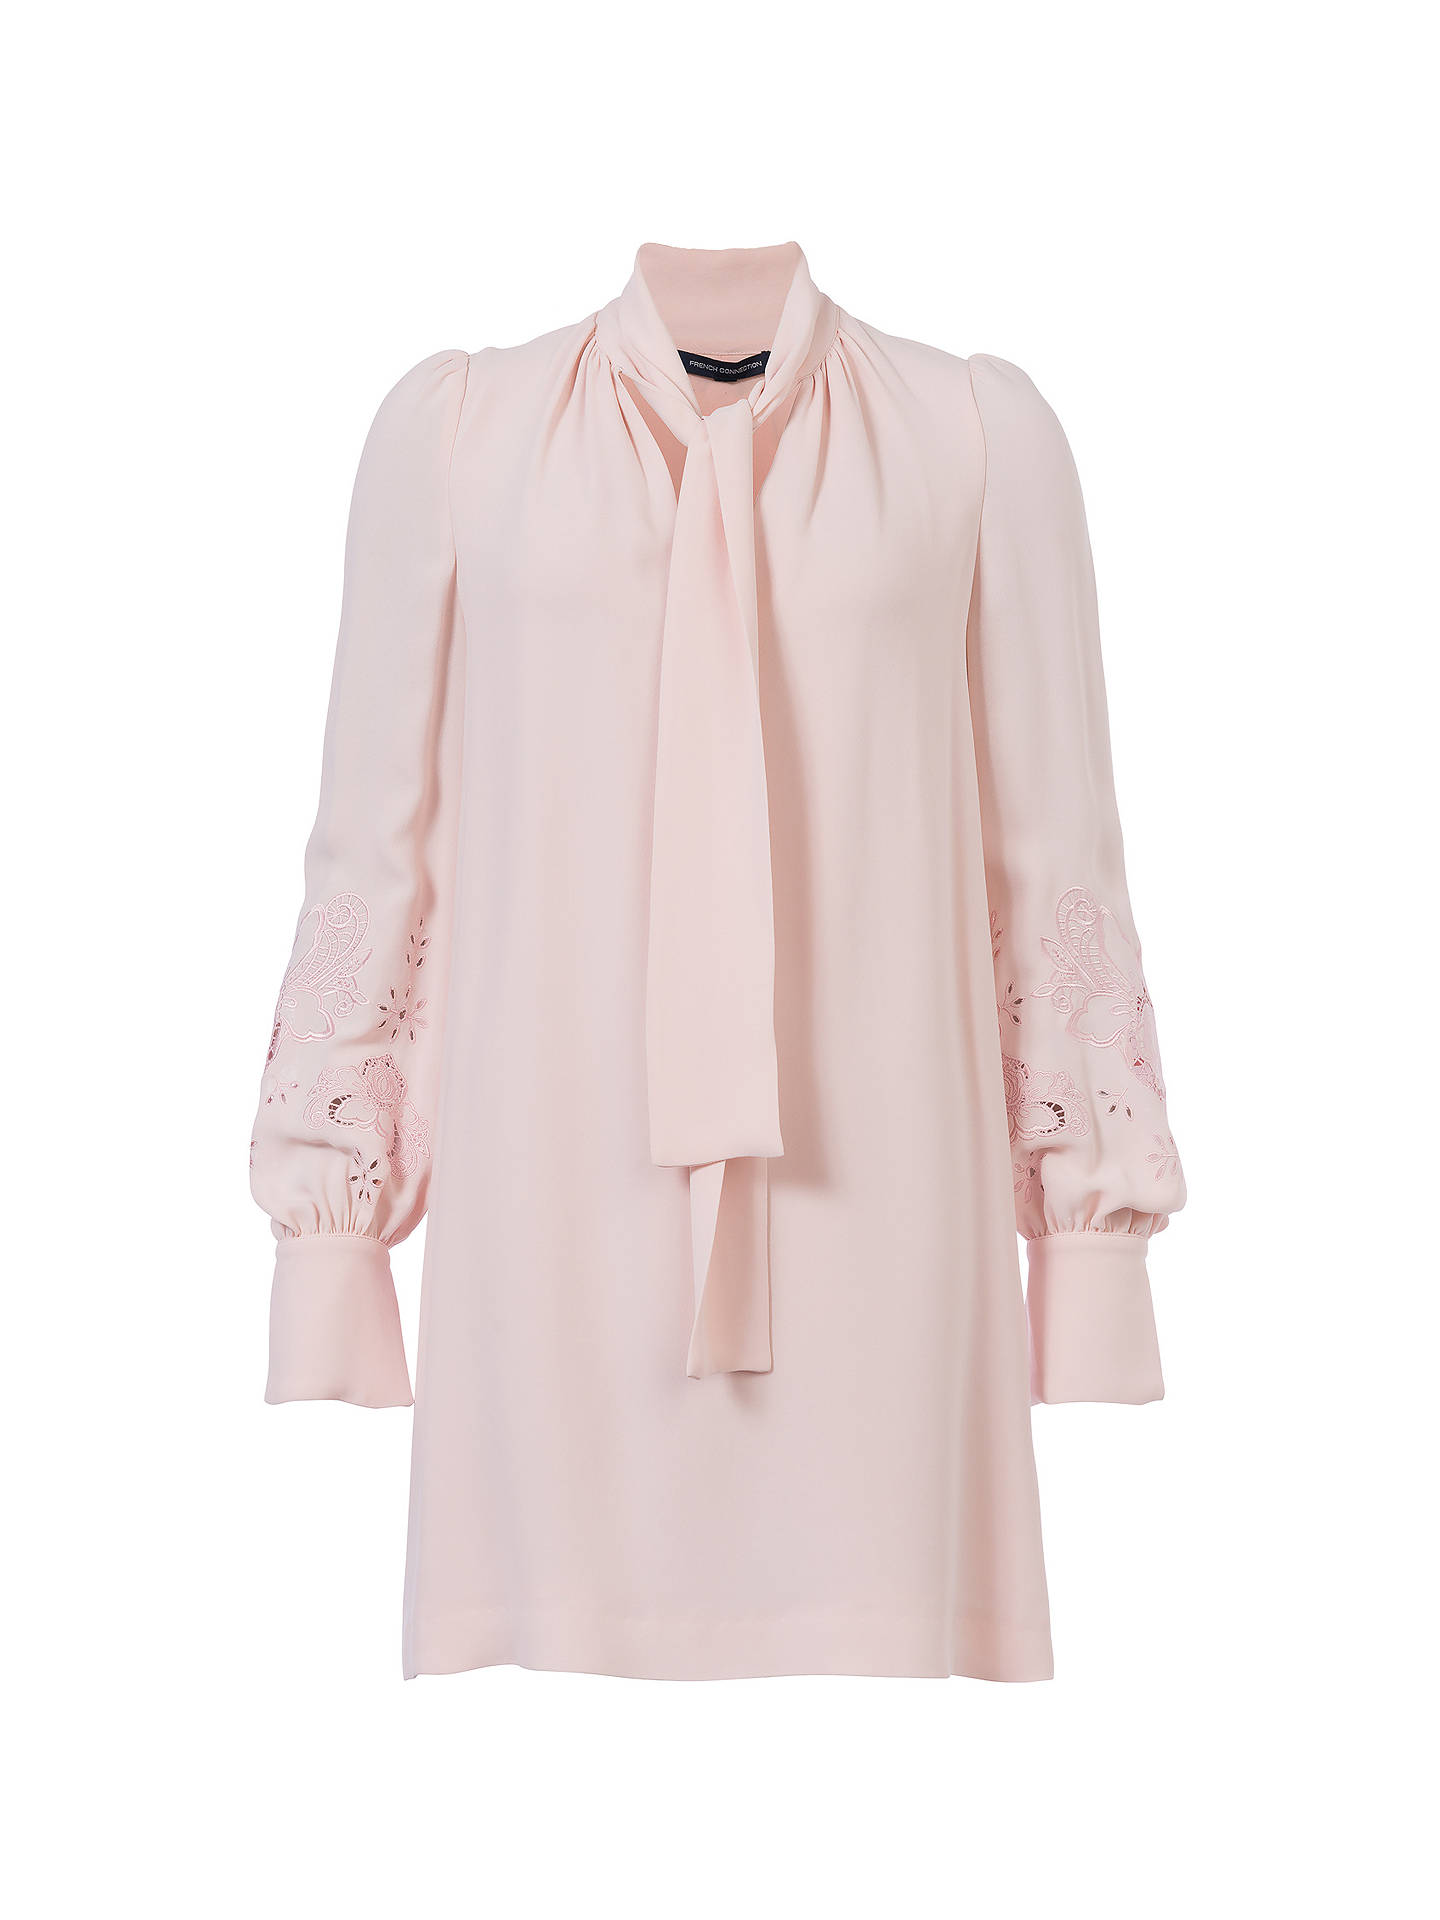 61a8fbebfdb ... Buy French Connection Arimi Dress, Barley Pink, 6 Online at  johnlewis.com ...